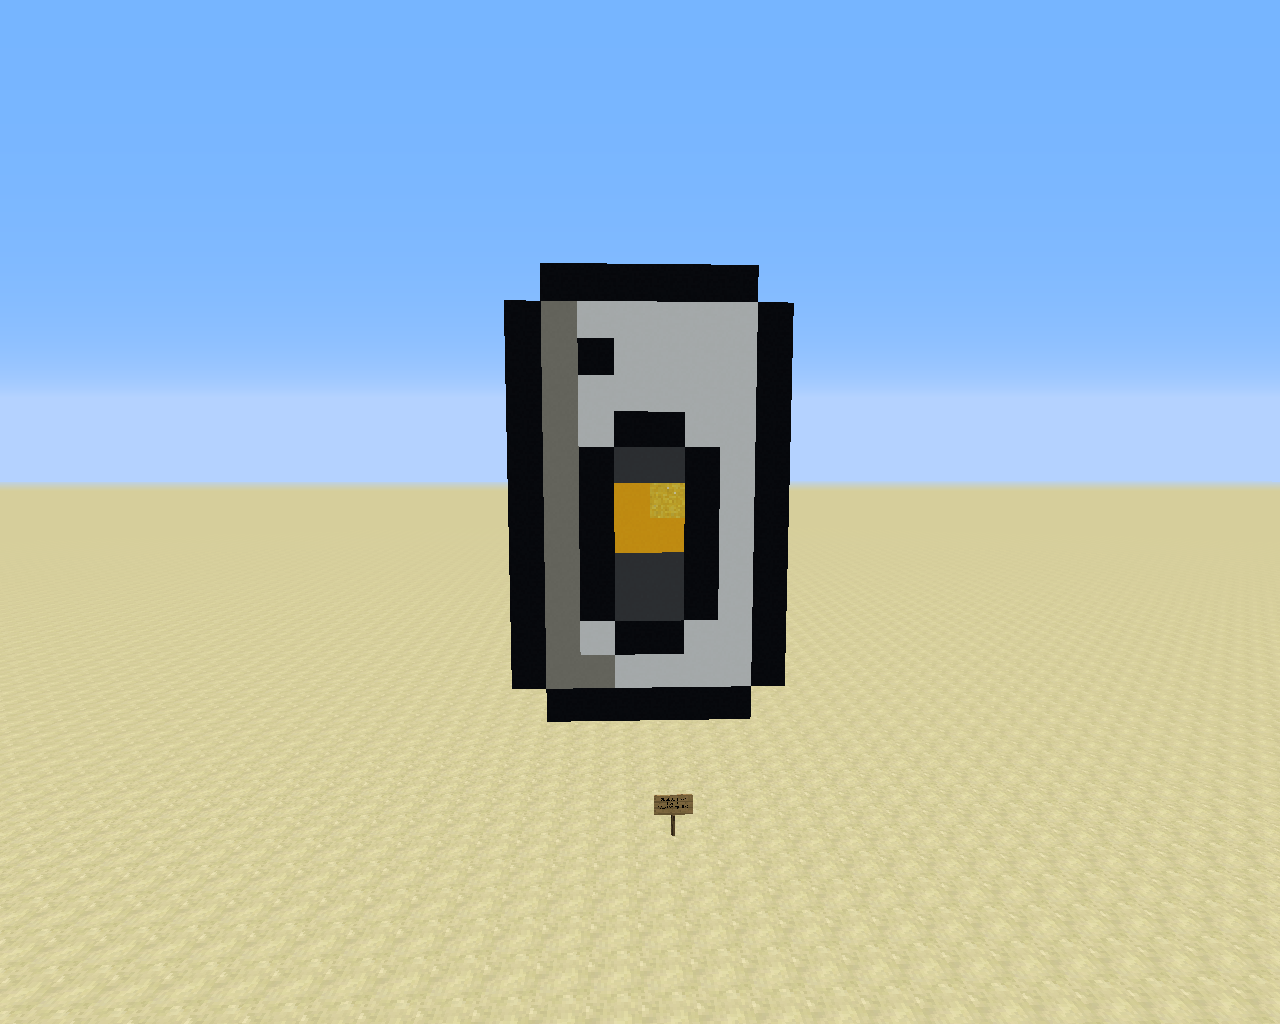 A custom sprite of GLaDOS, based on her current design from Portal 2.